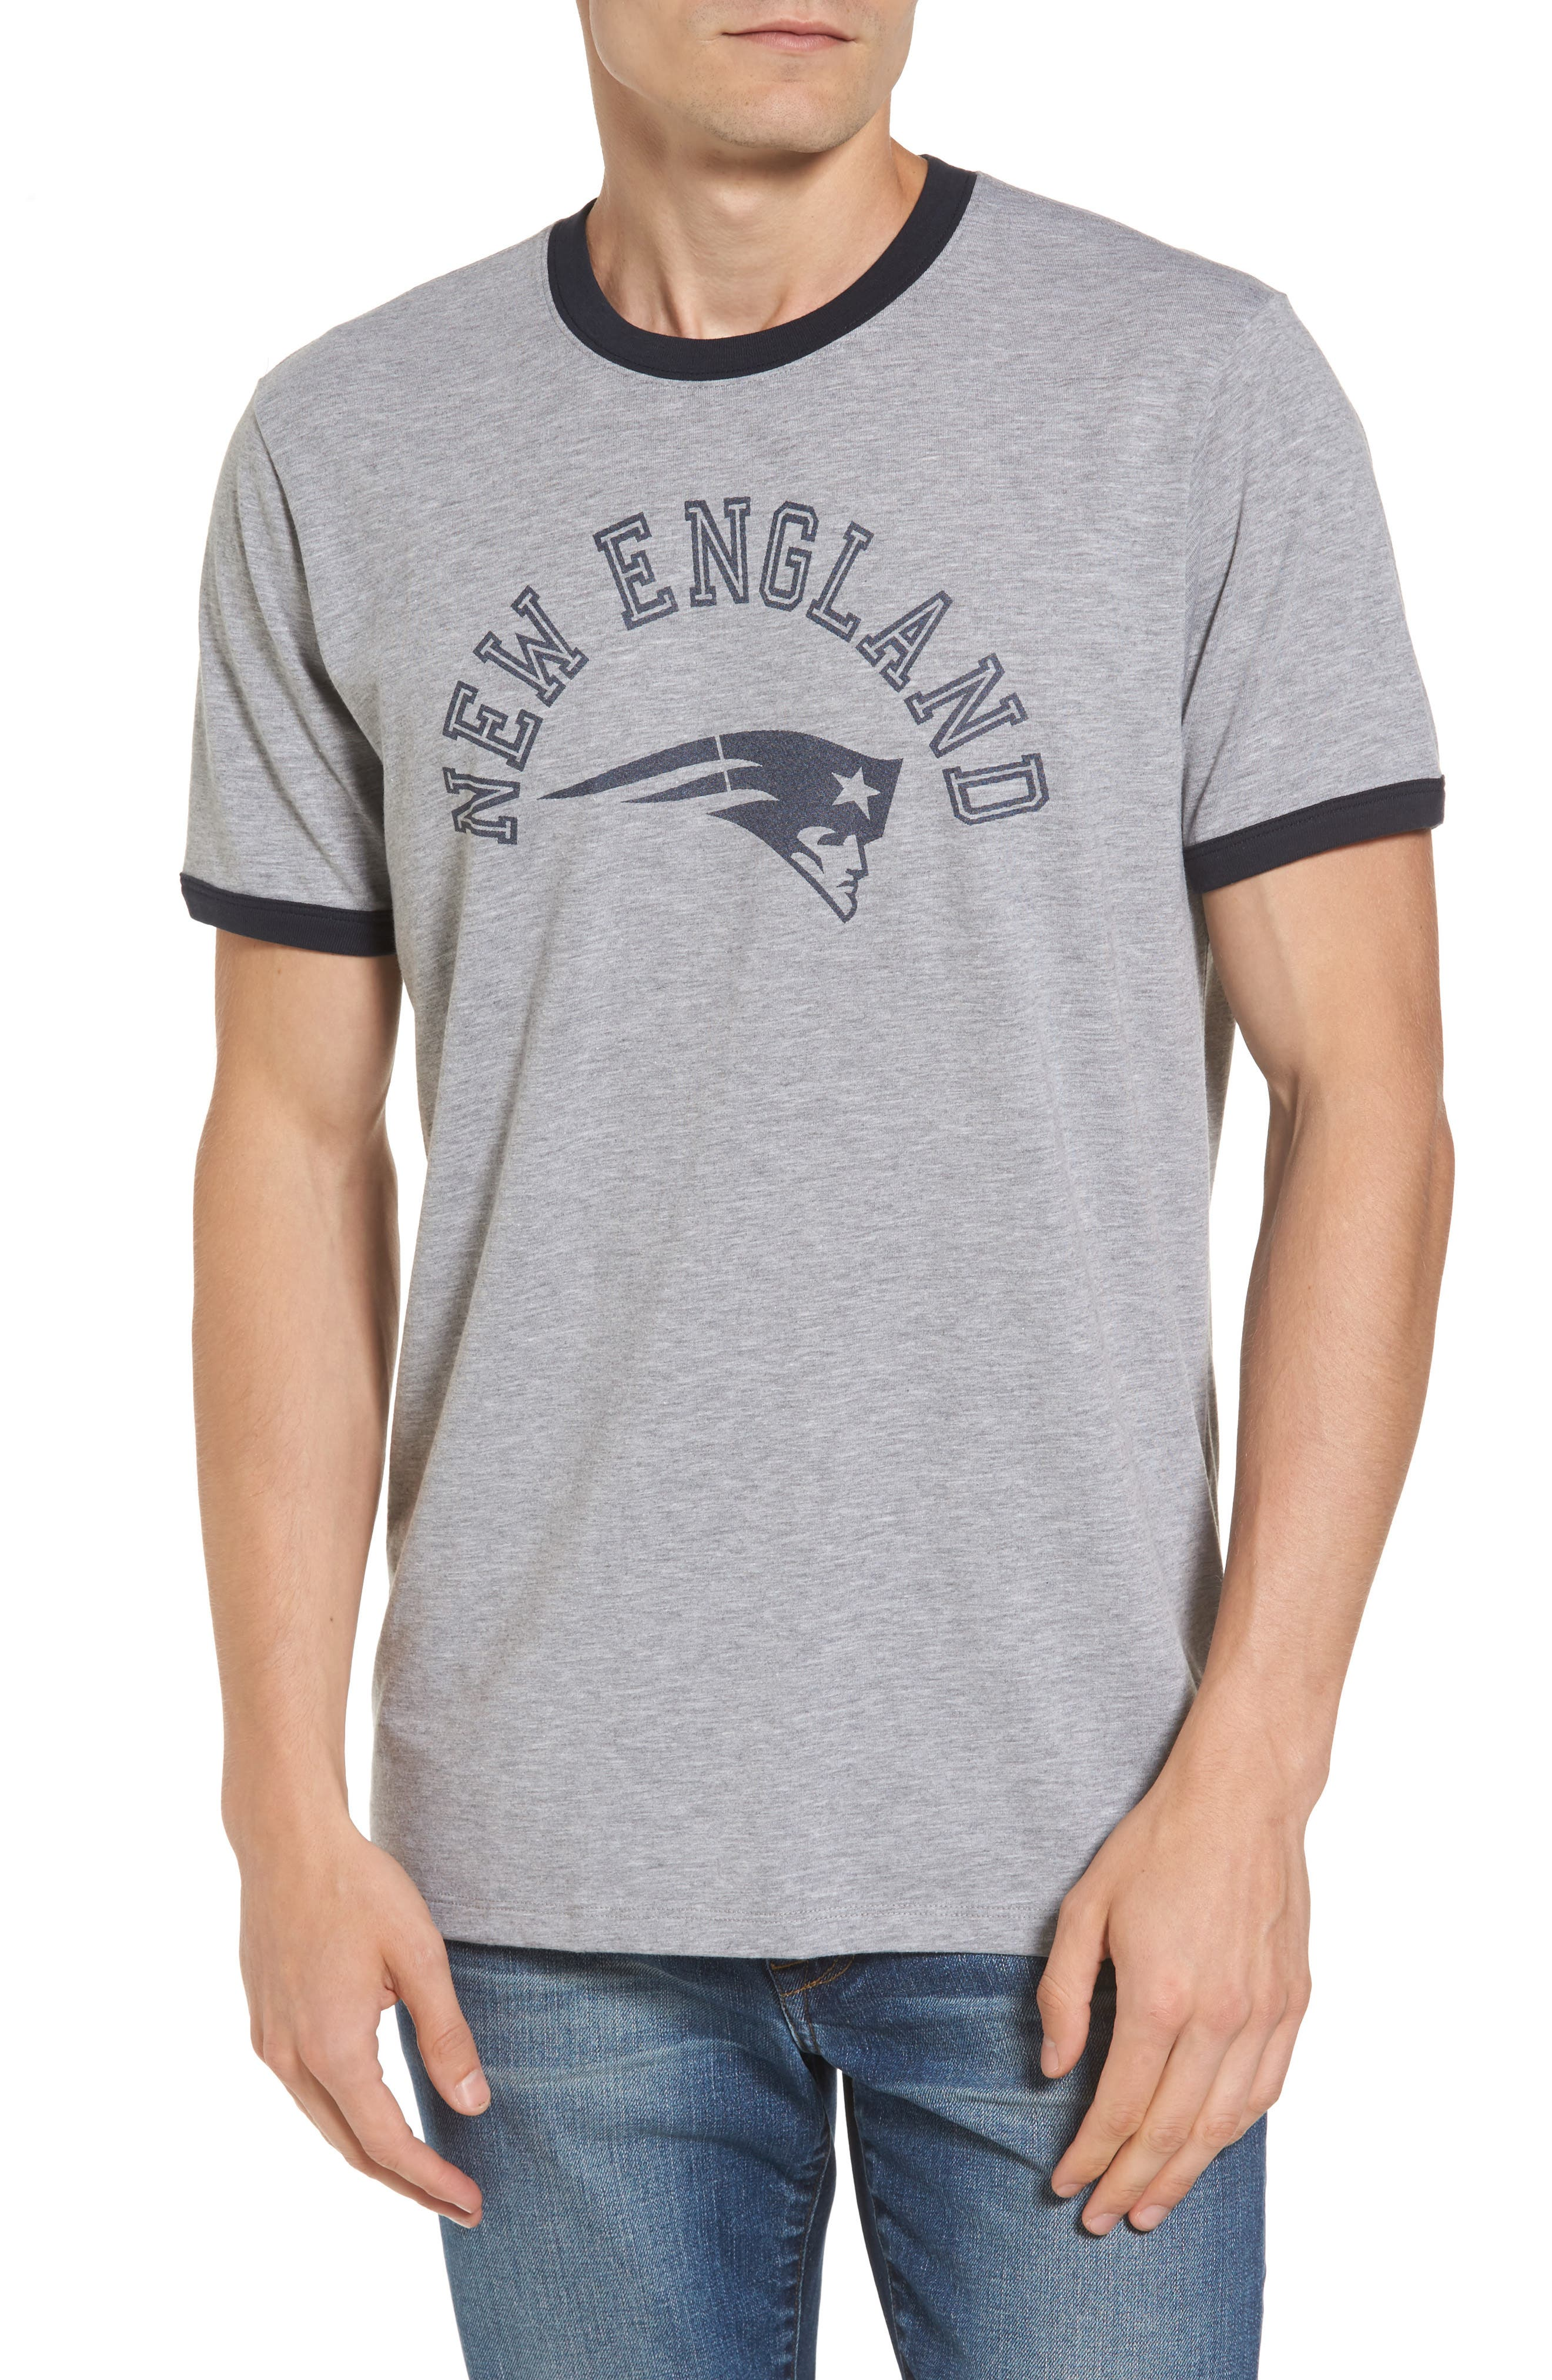 Alternate Image 1 Selected - '47 New England Patriots Ringer T-Shirt